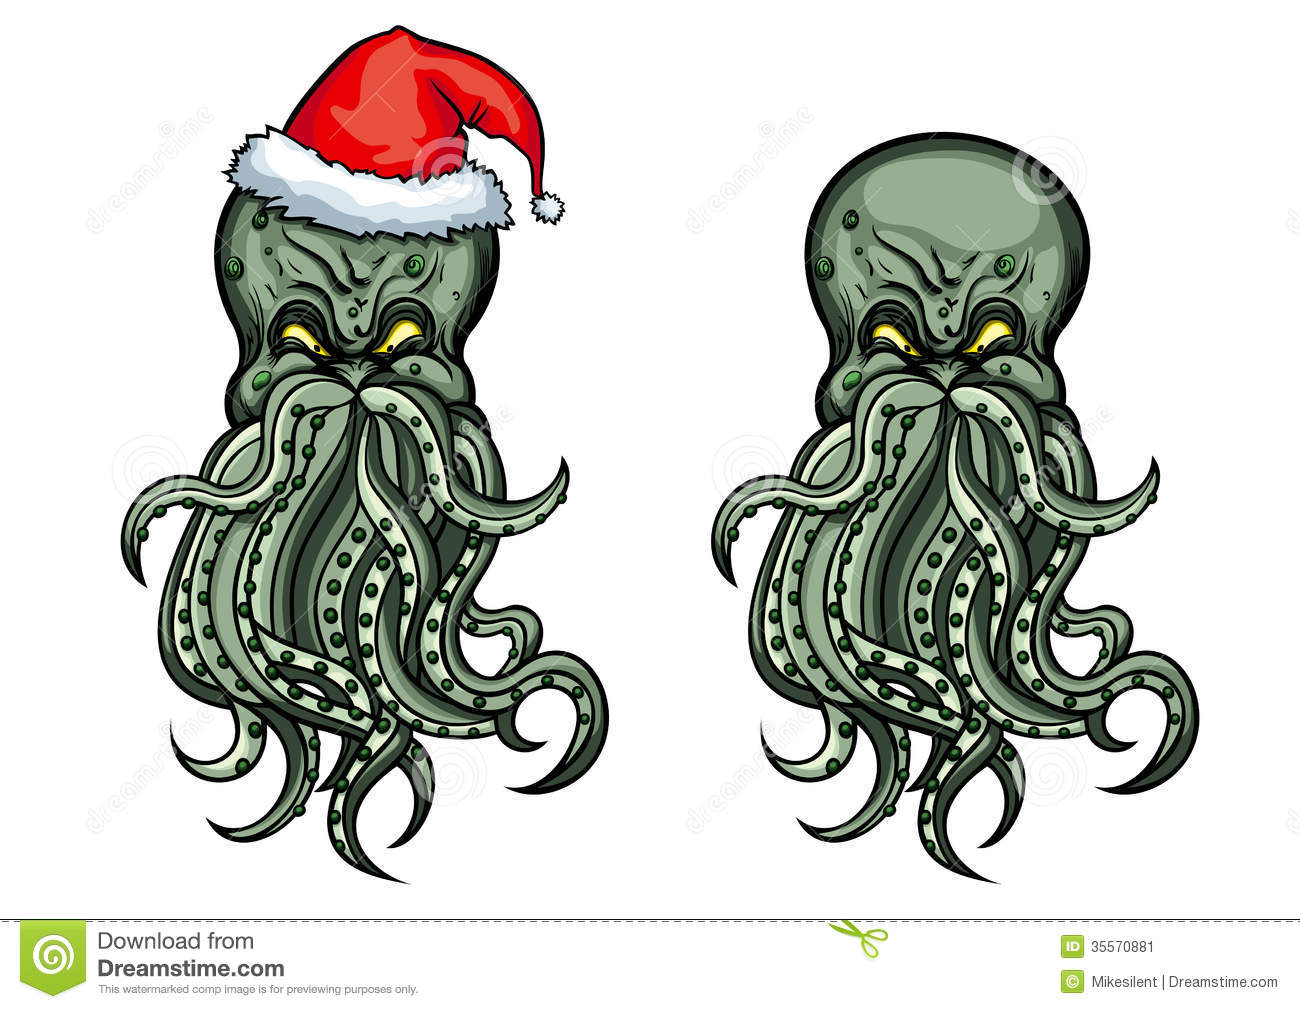 Cthulhu clipart #17, Download drawings